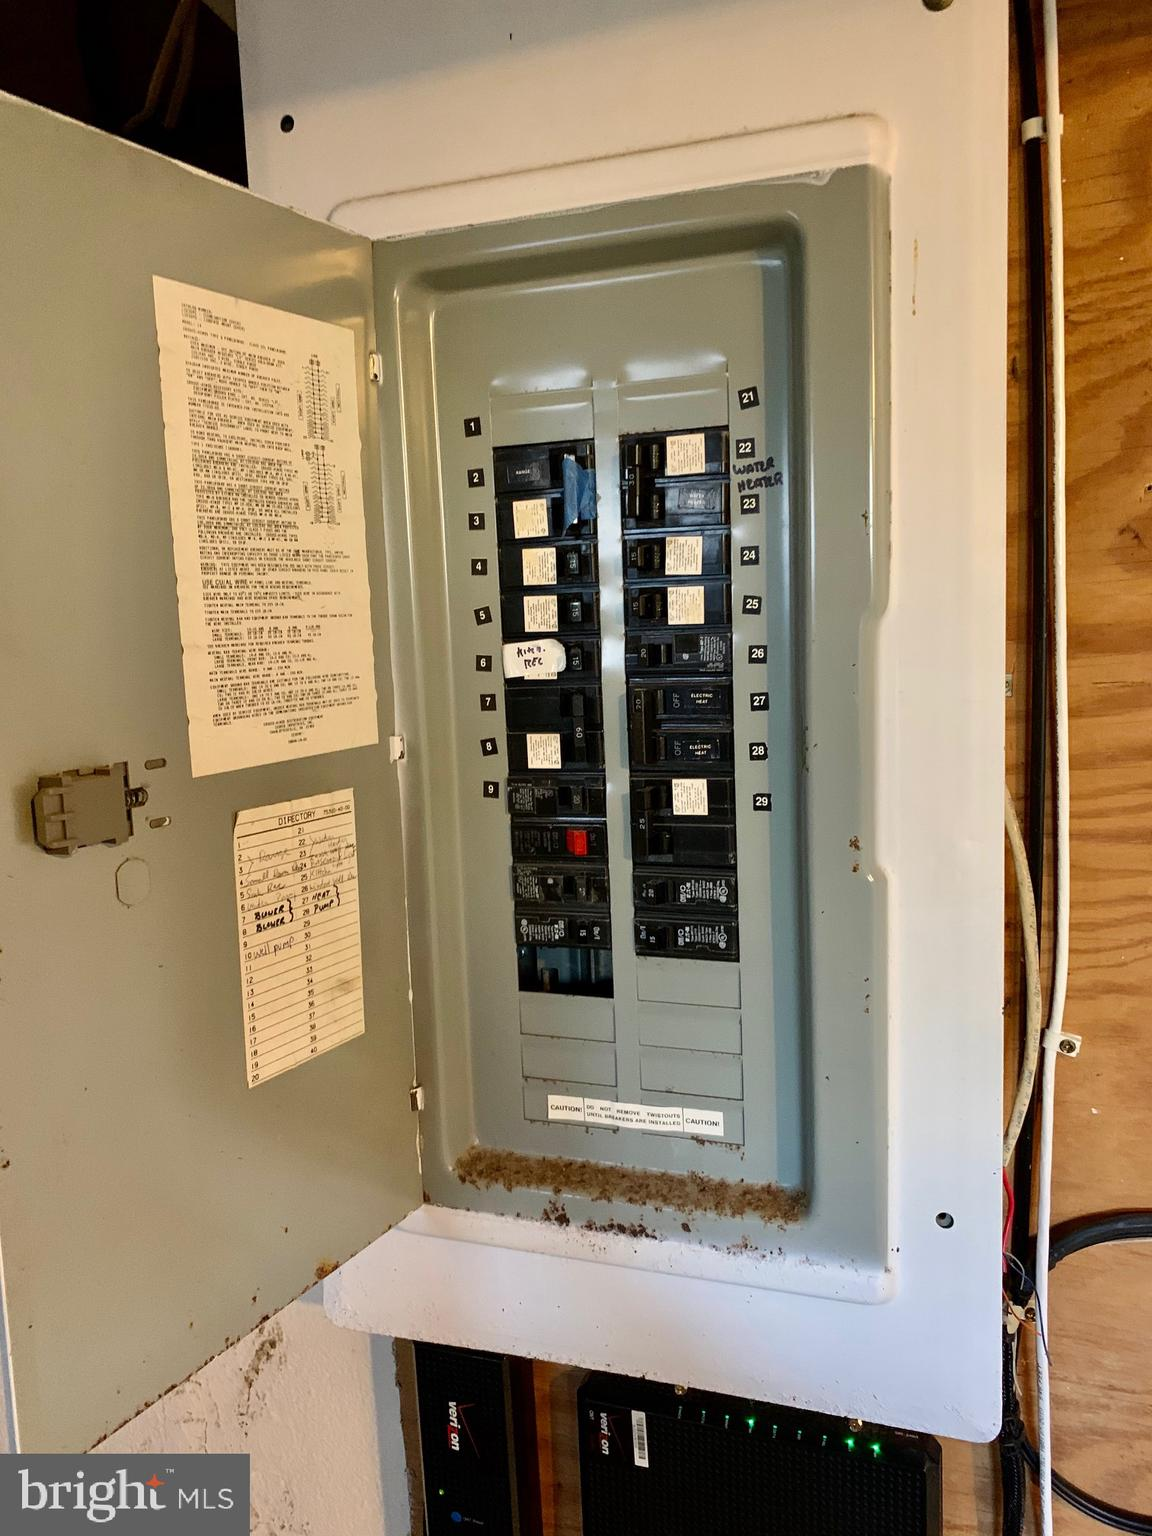 200 AMP Electrical Service